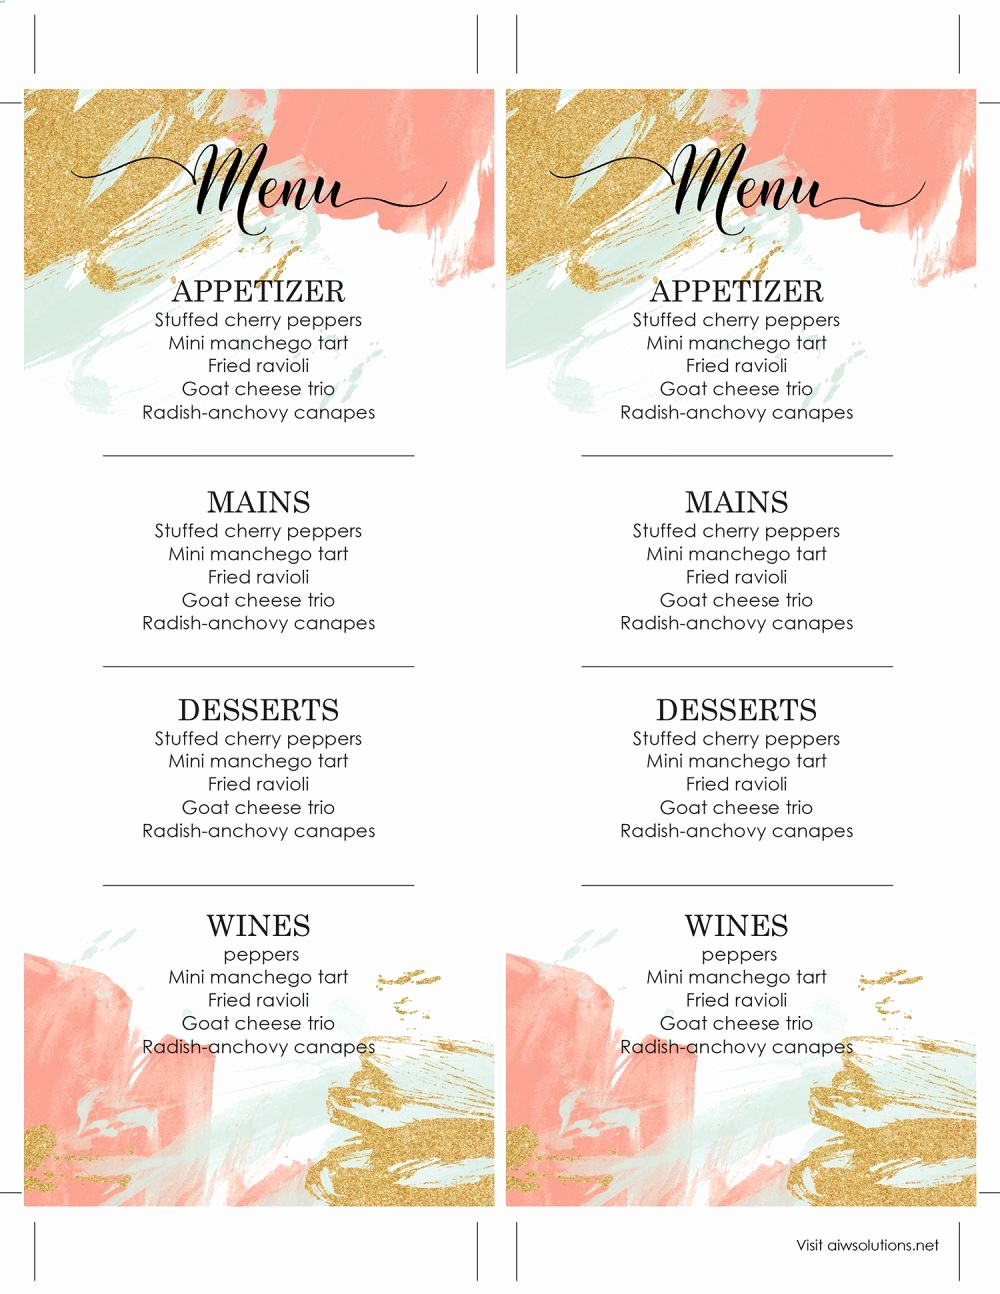 Free Editable Restaurant Menu Templates New Design & Templates Menu Templates Wedding Menu Food